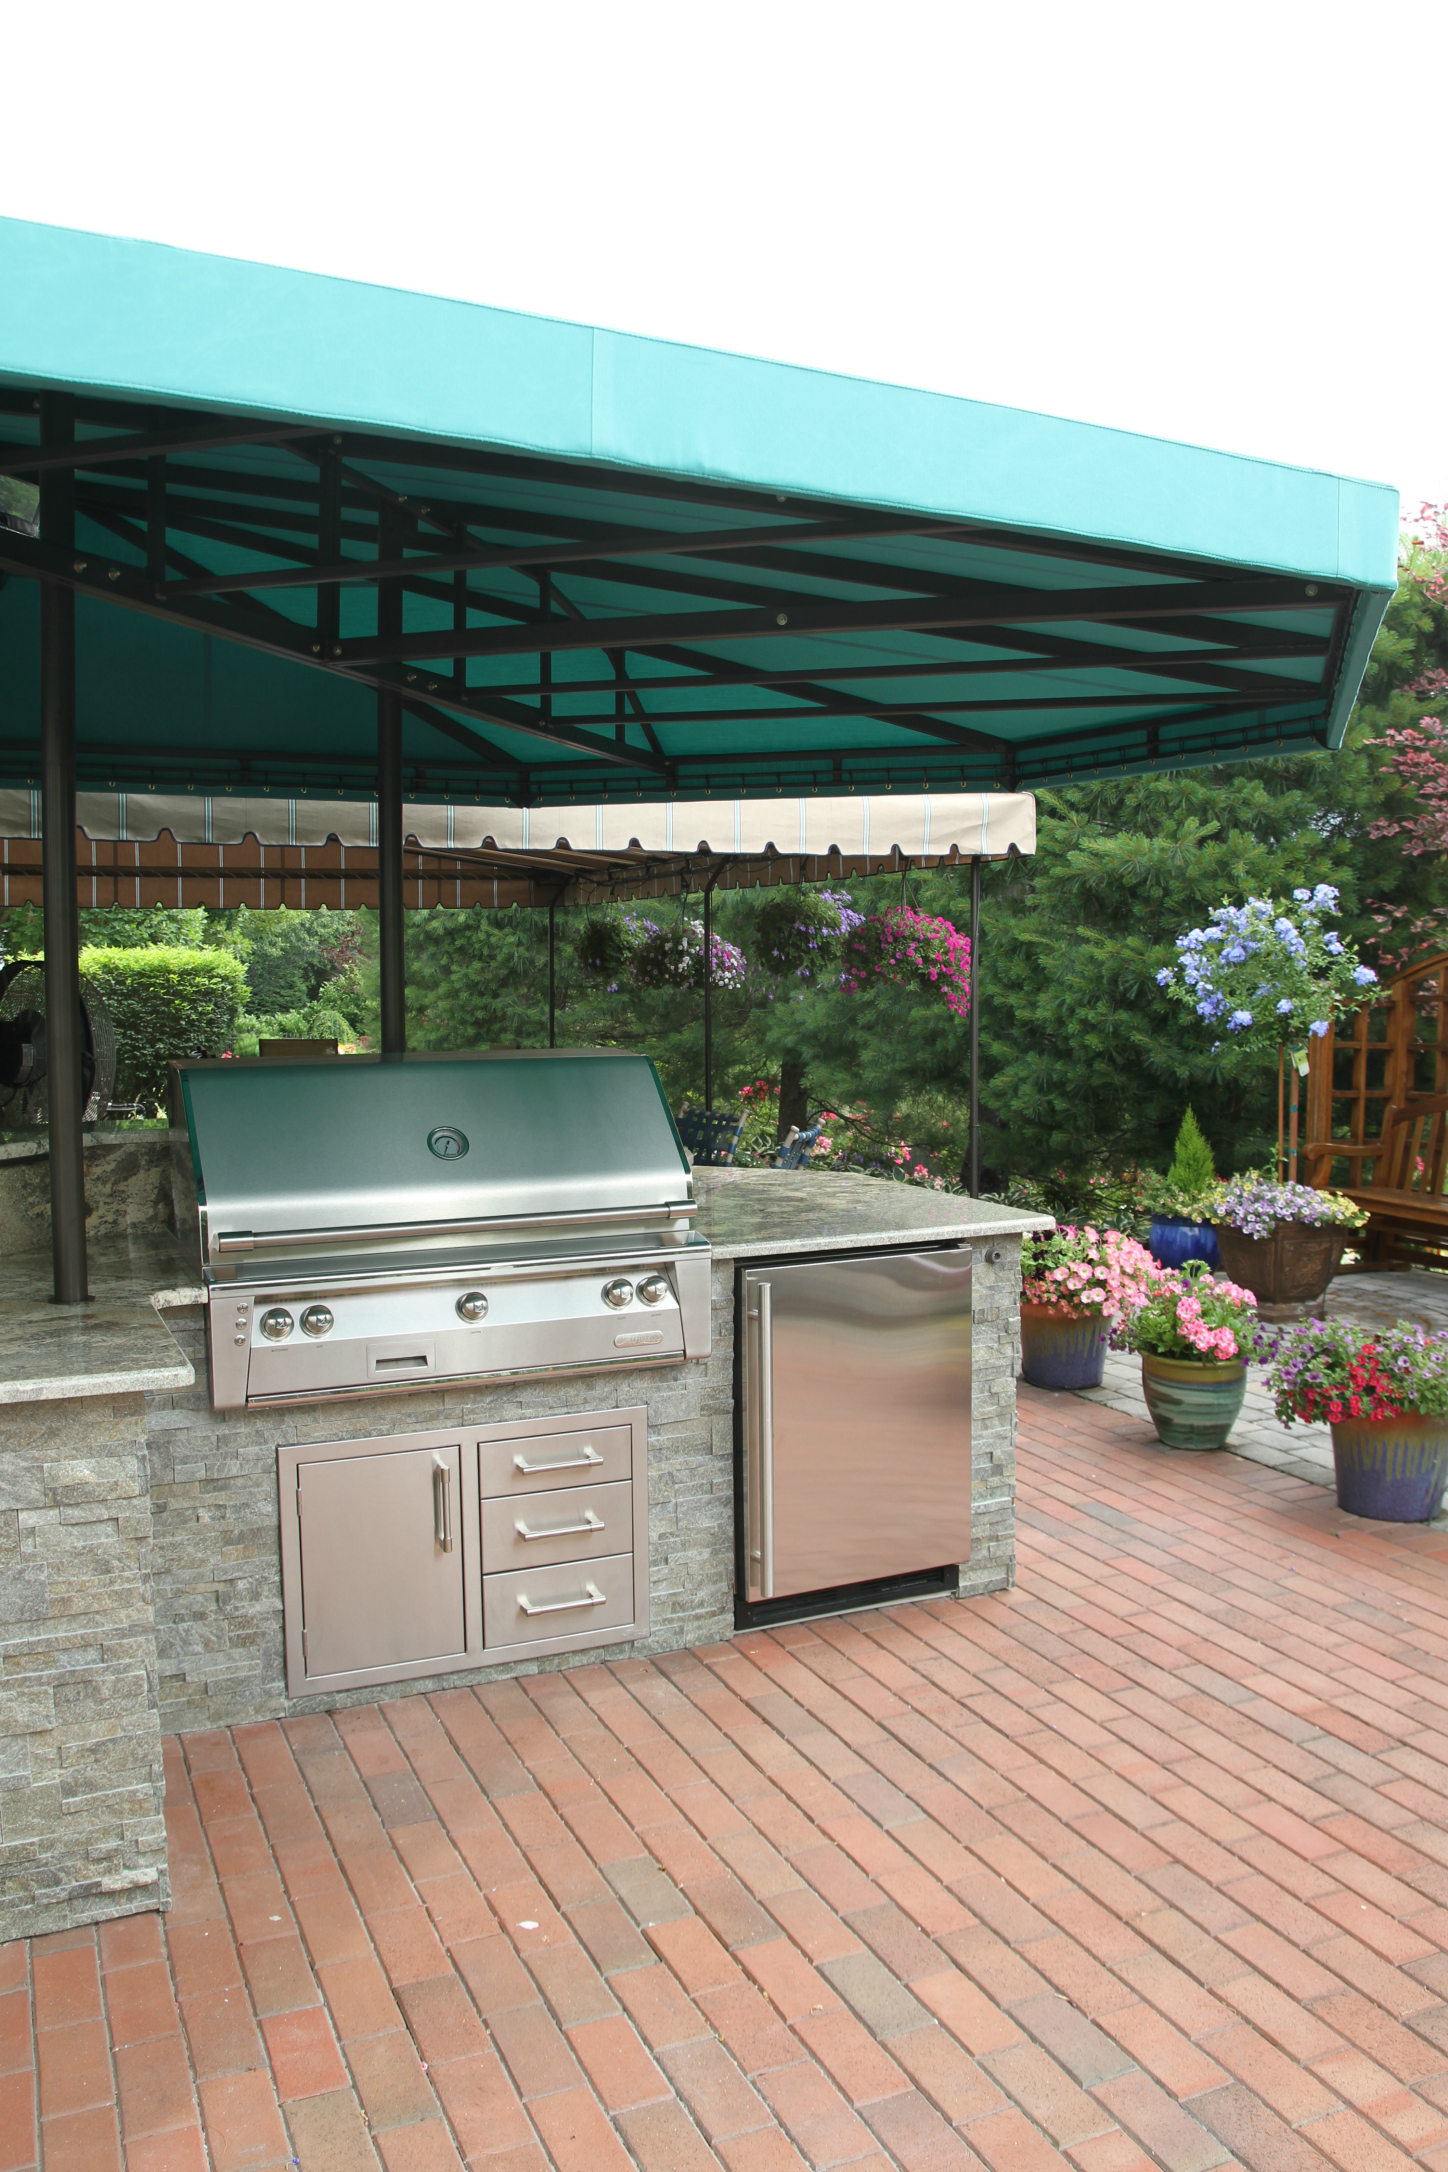 Outdoor Kitchen And Grill Area Awning Cover